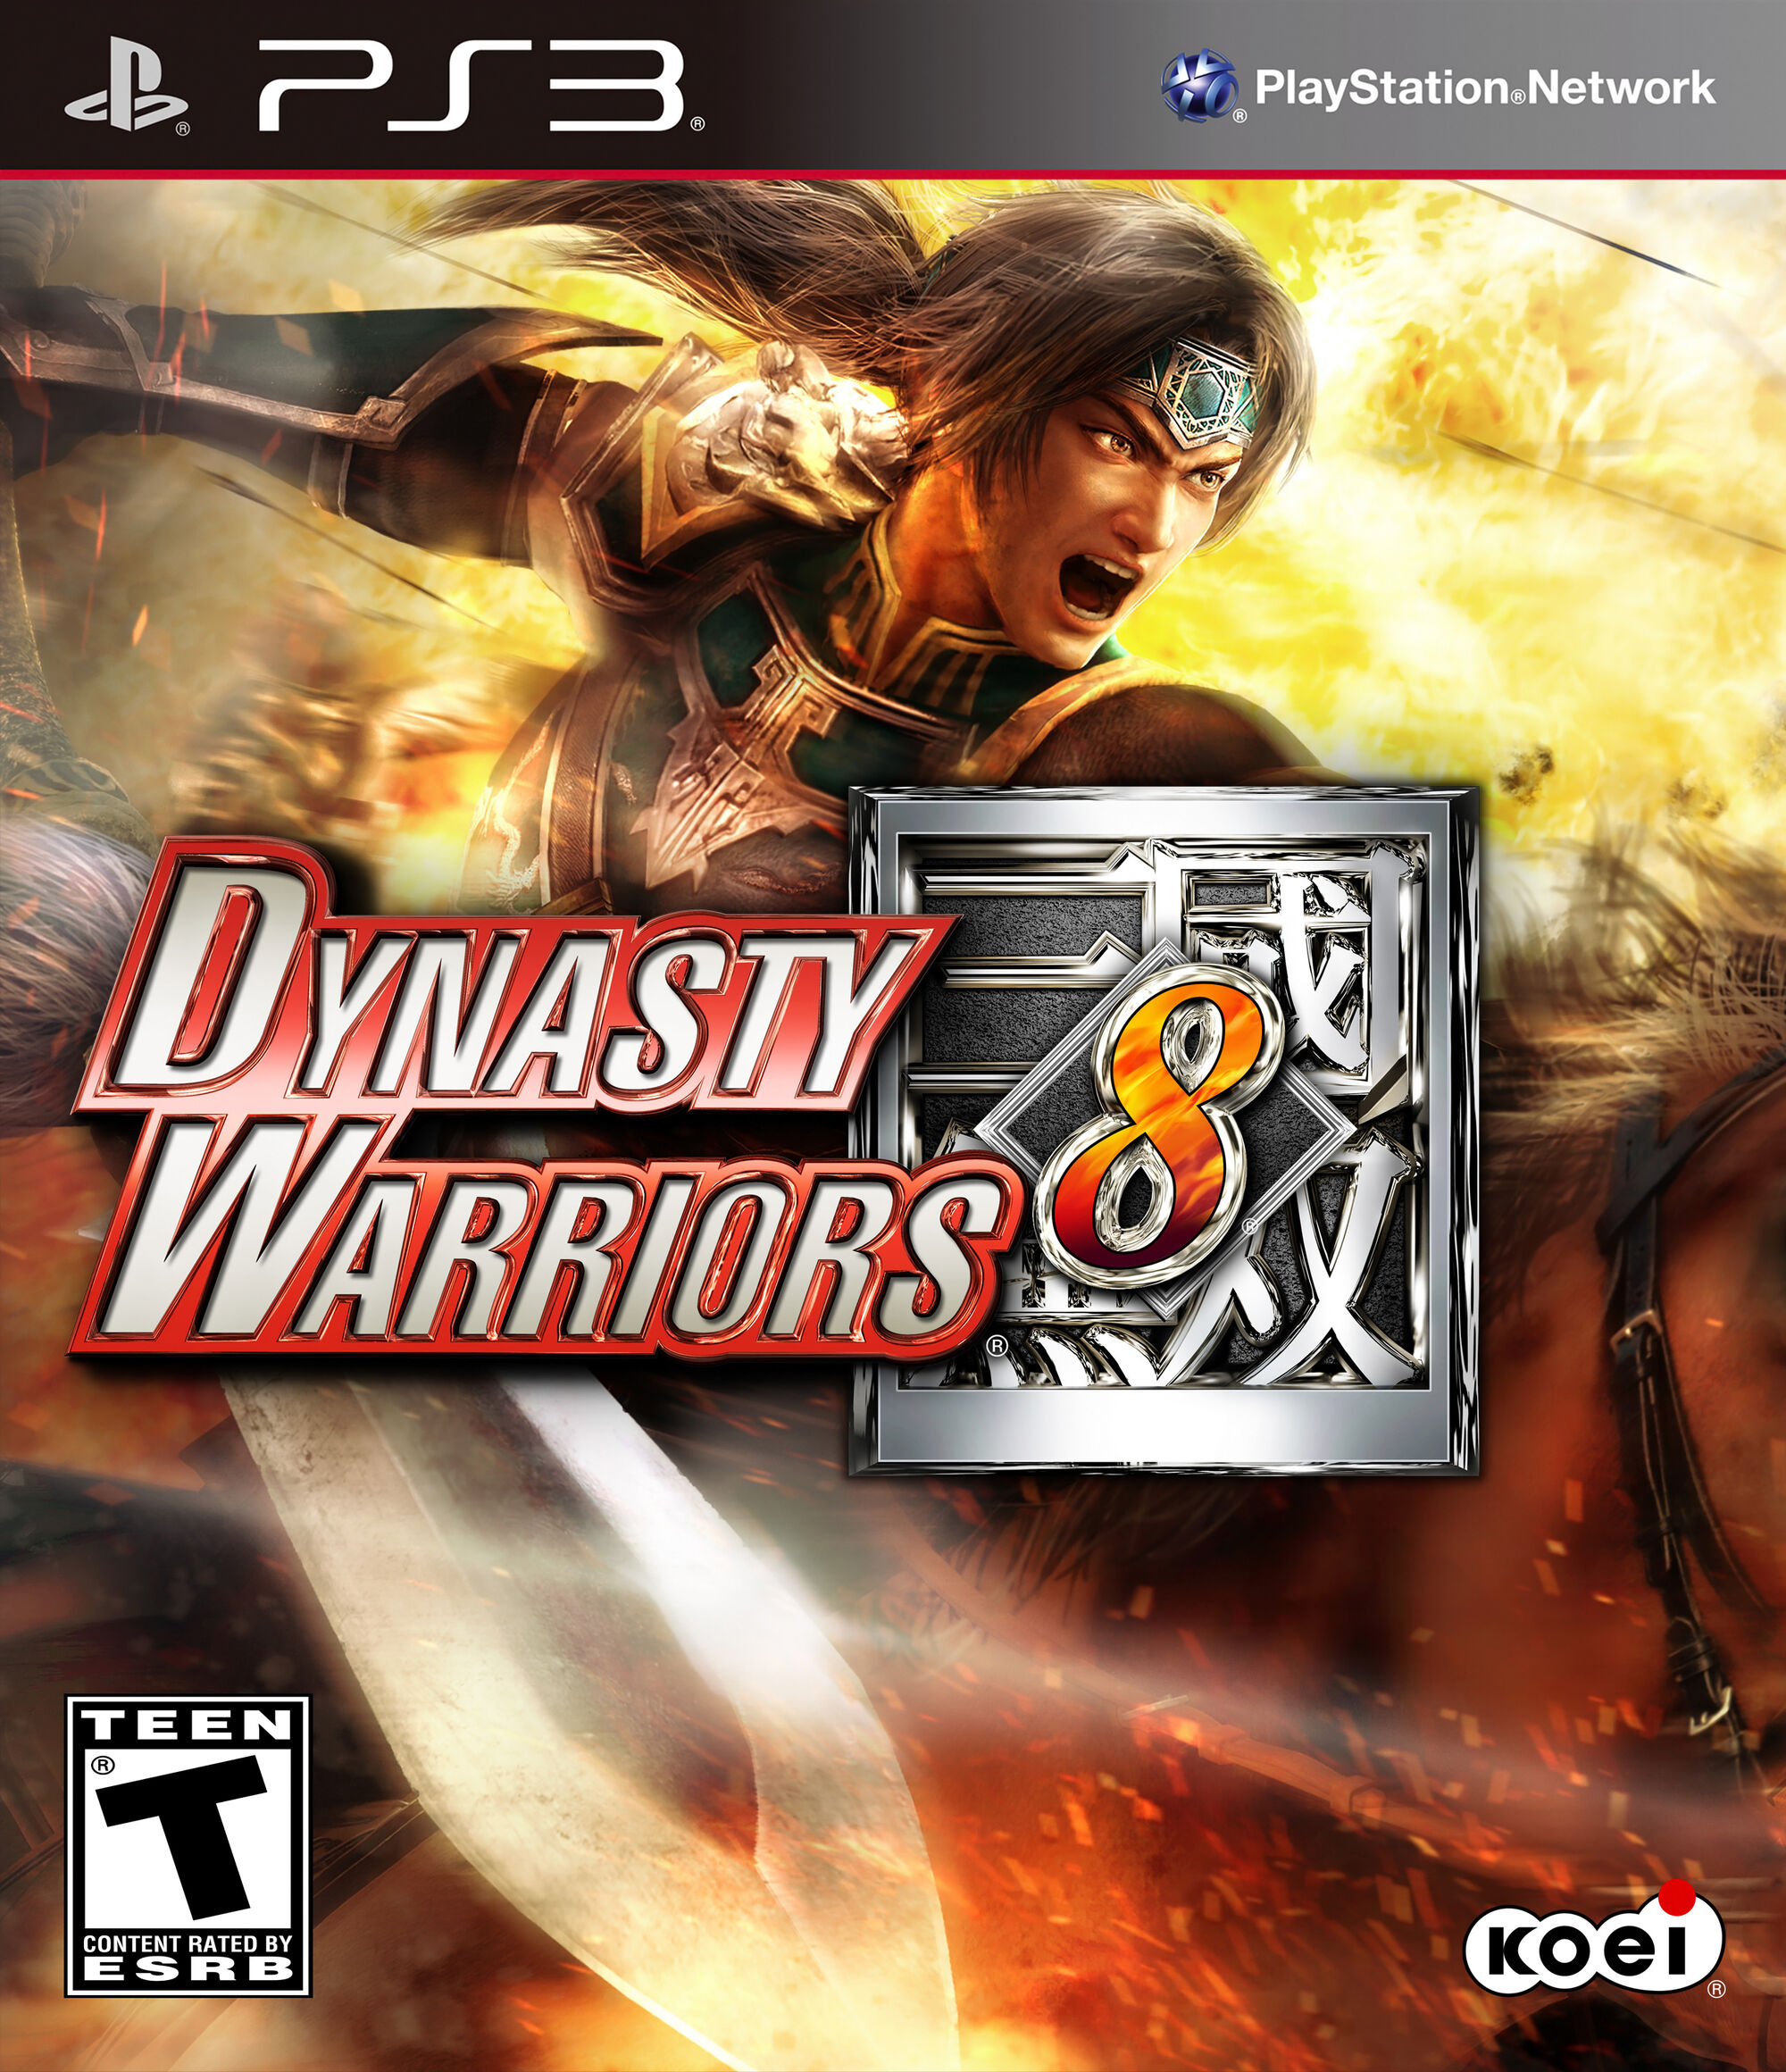 Dynasty Warriors 8 | Koei Wiki | FANDOM powered by Wikia